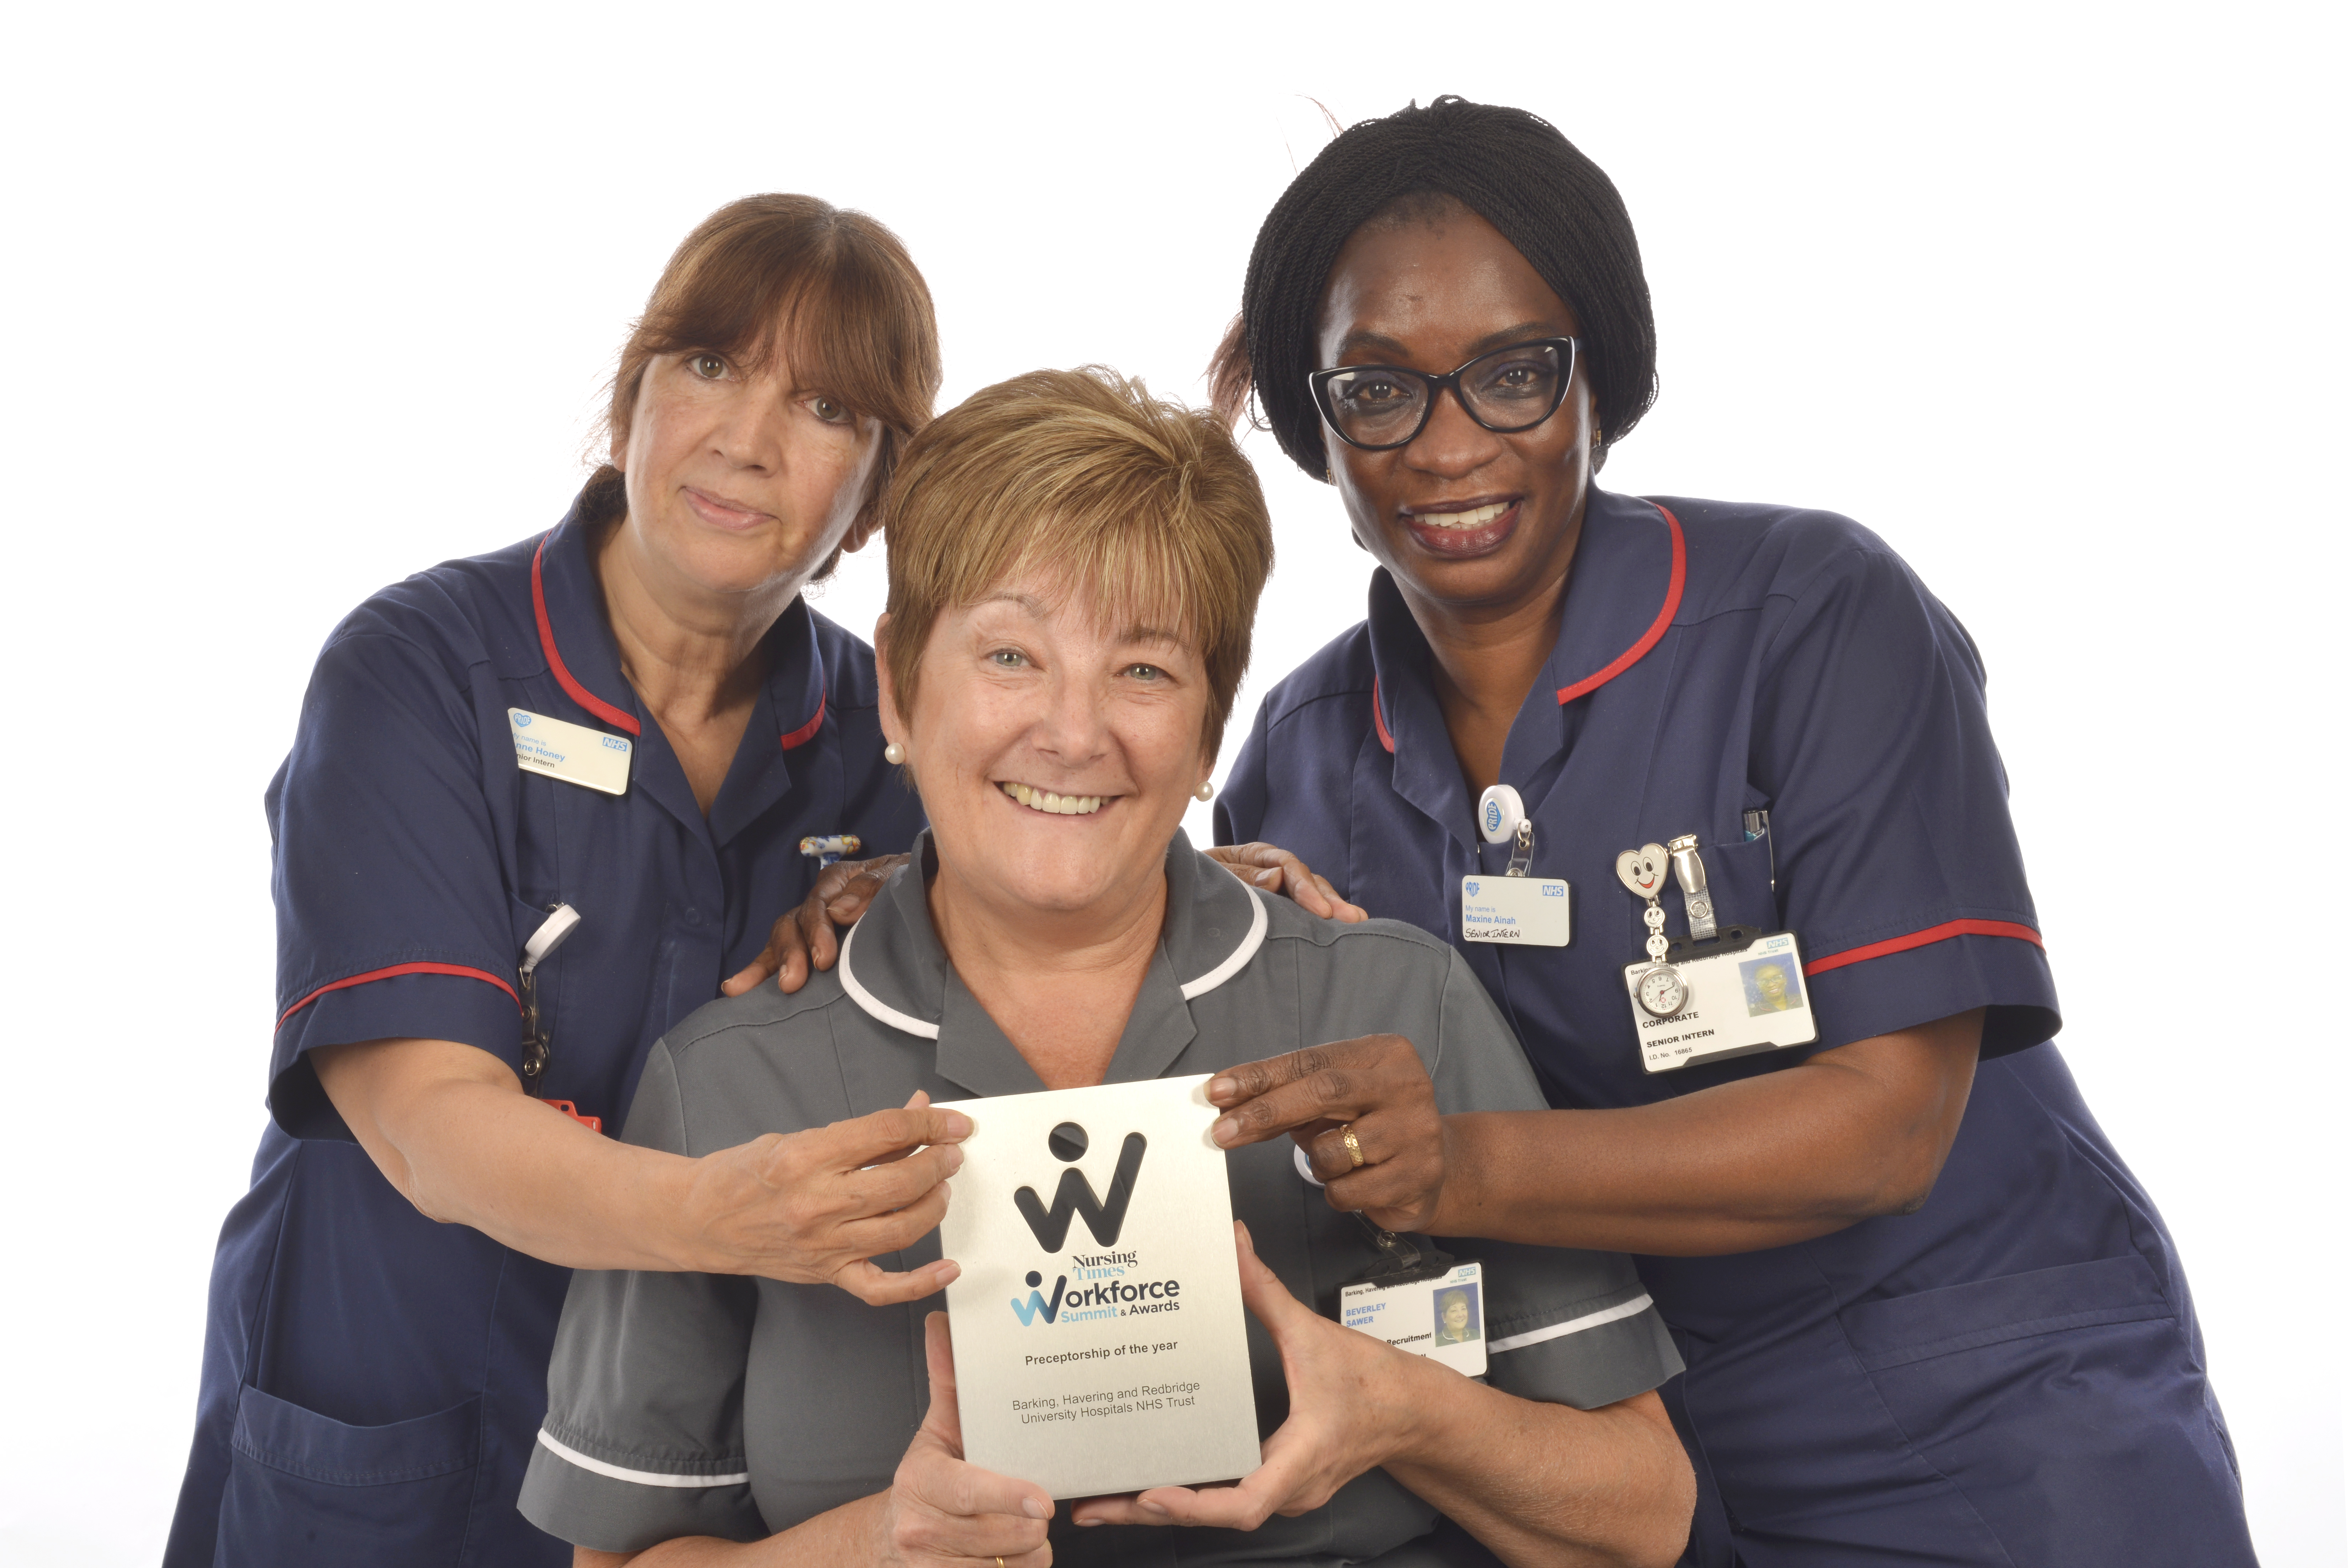 The Nursing Times Workforce Awards